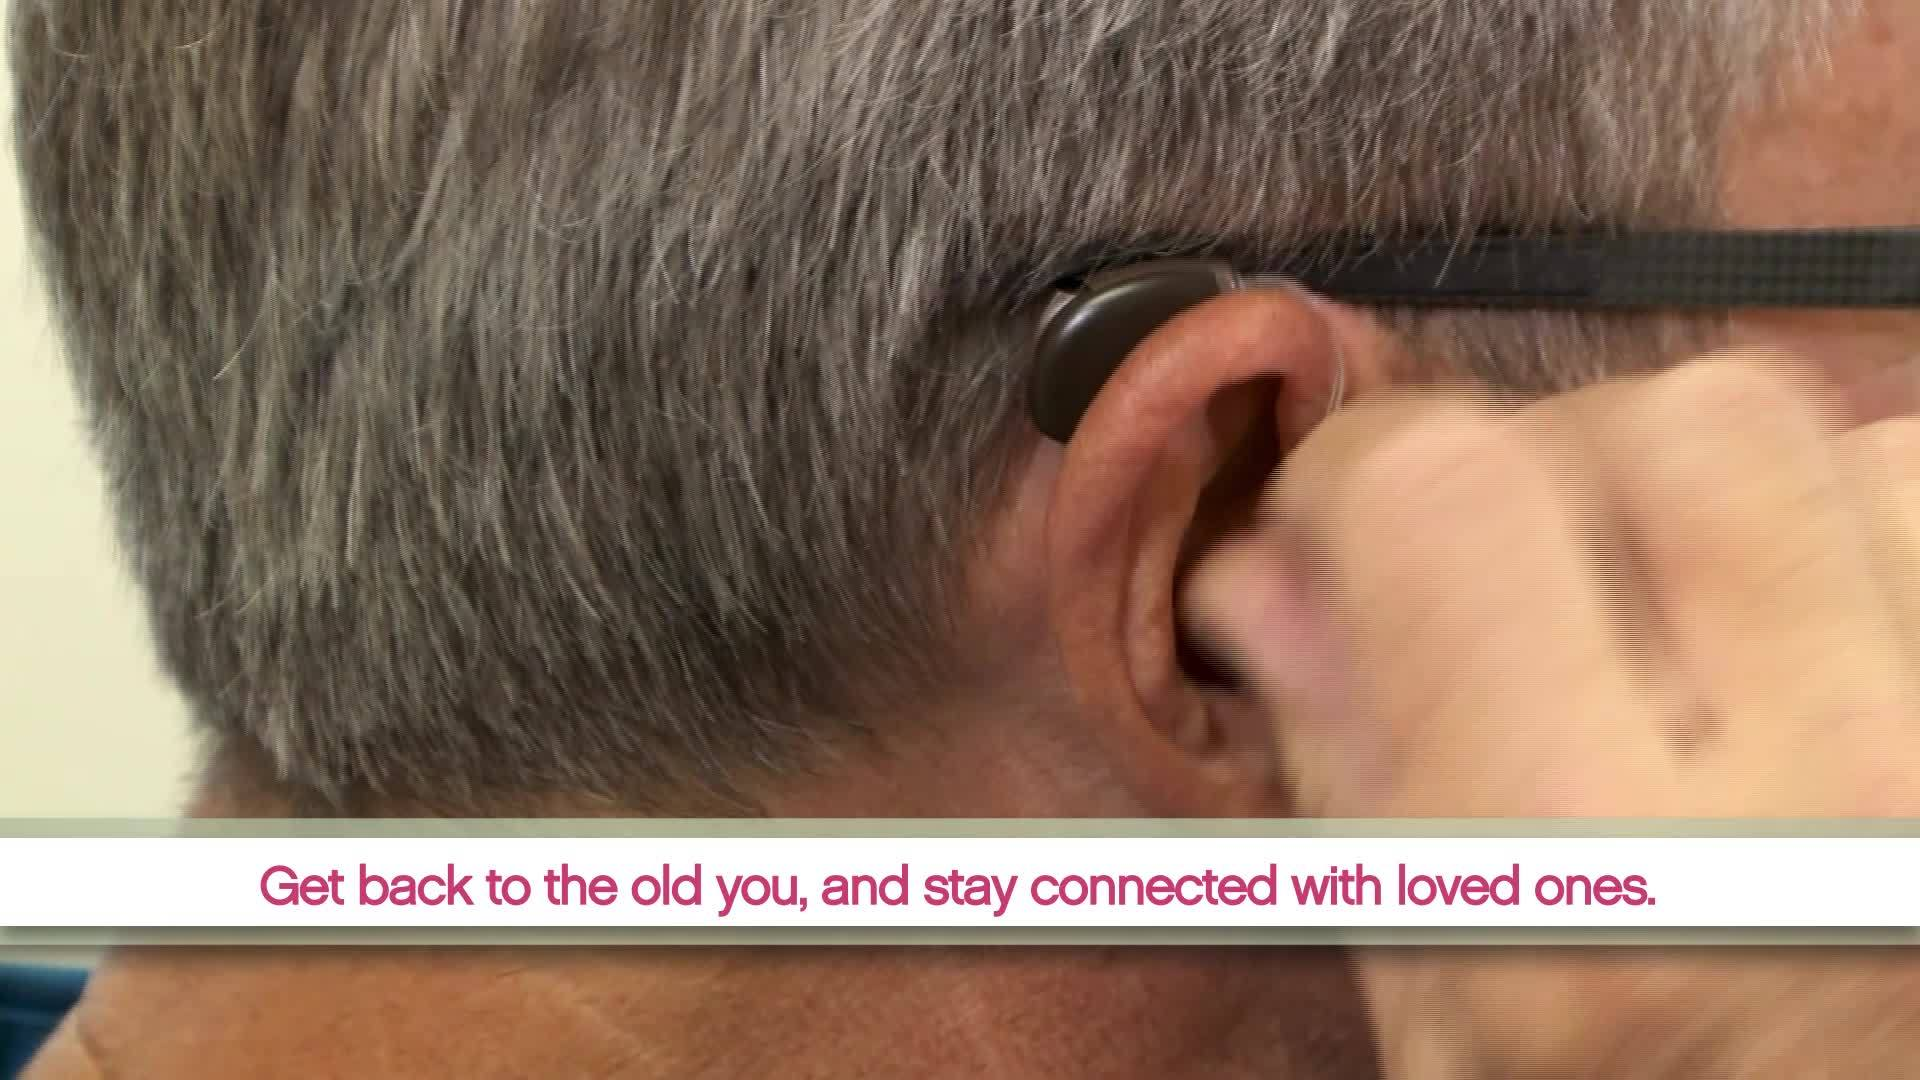 Addressing_hearing_loss_6_20190329183933